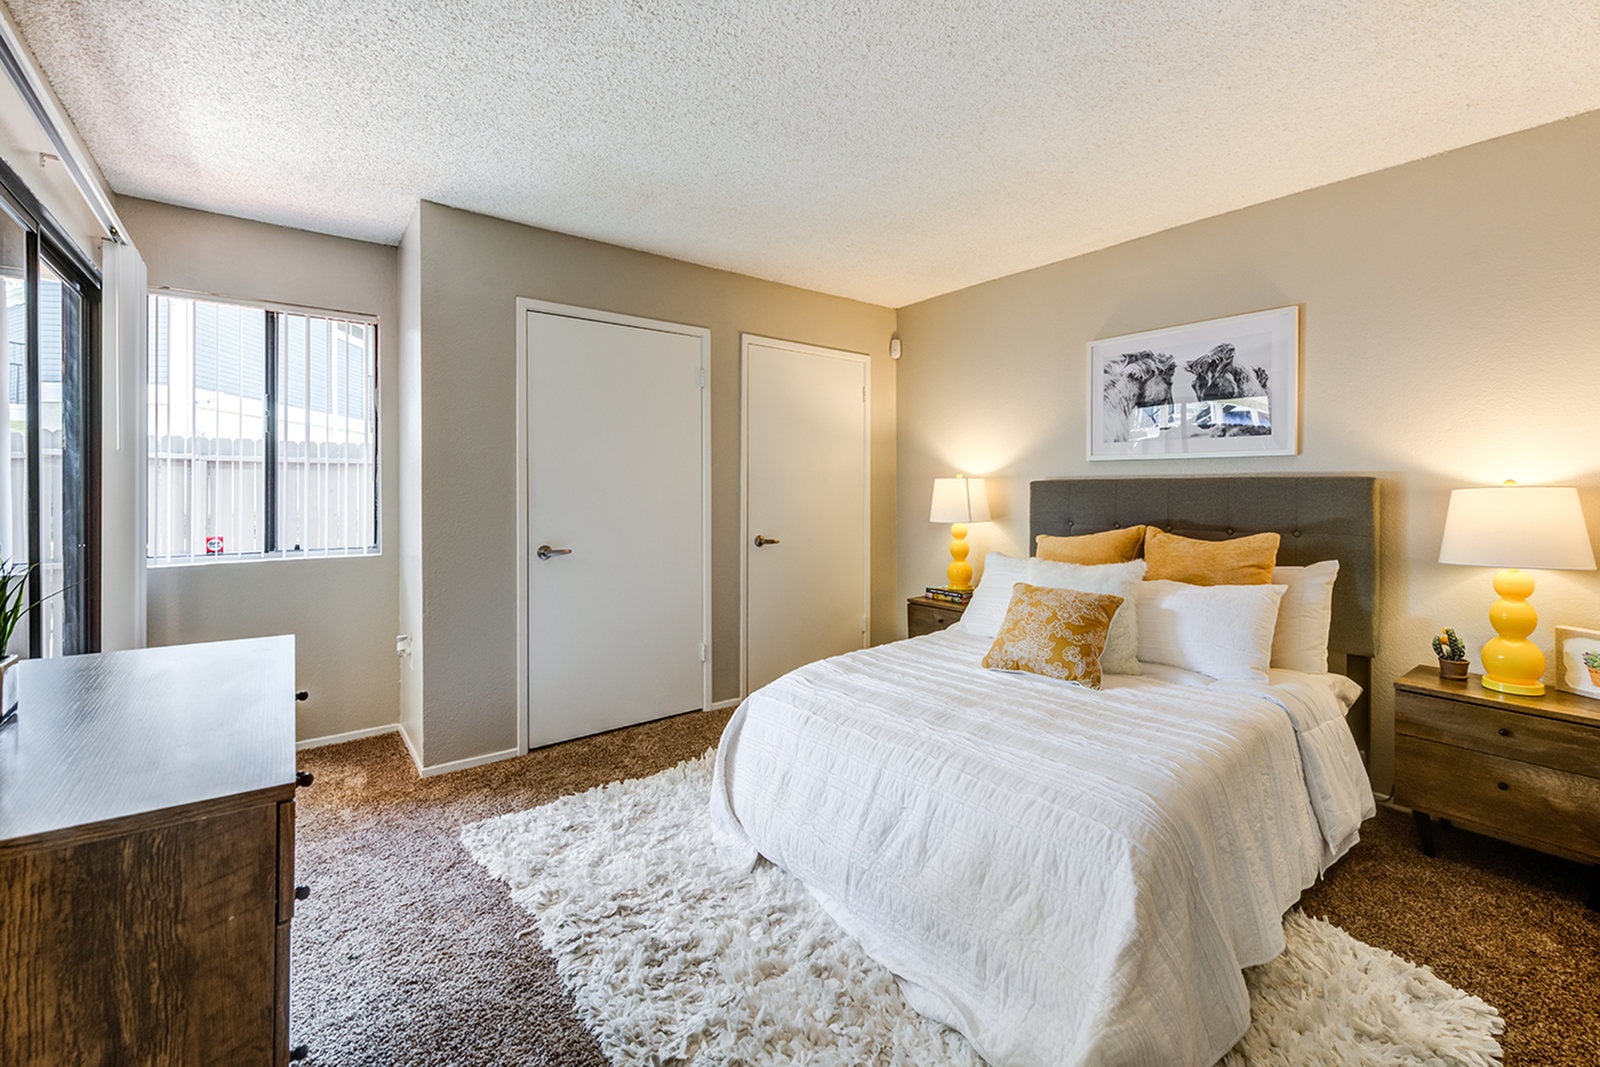 Bedroom with large bed and closets